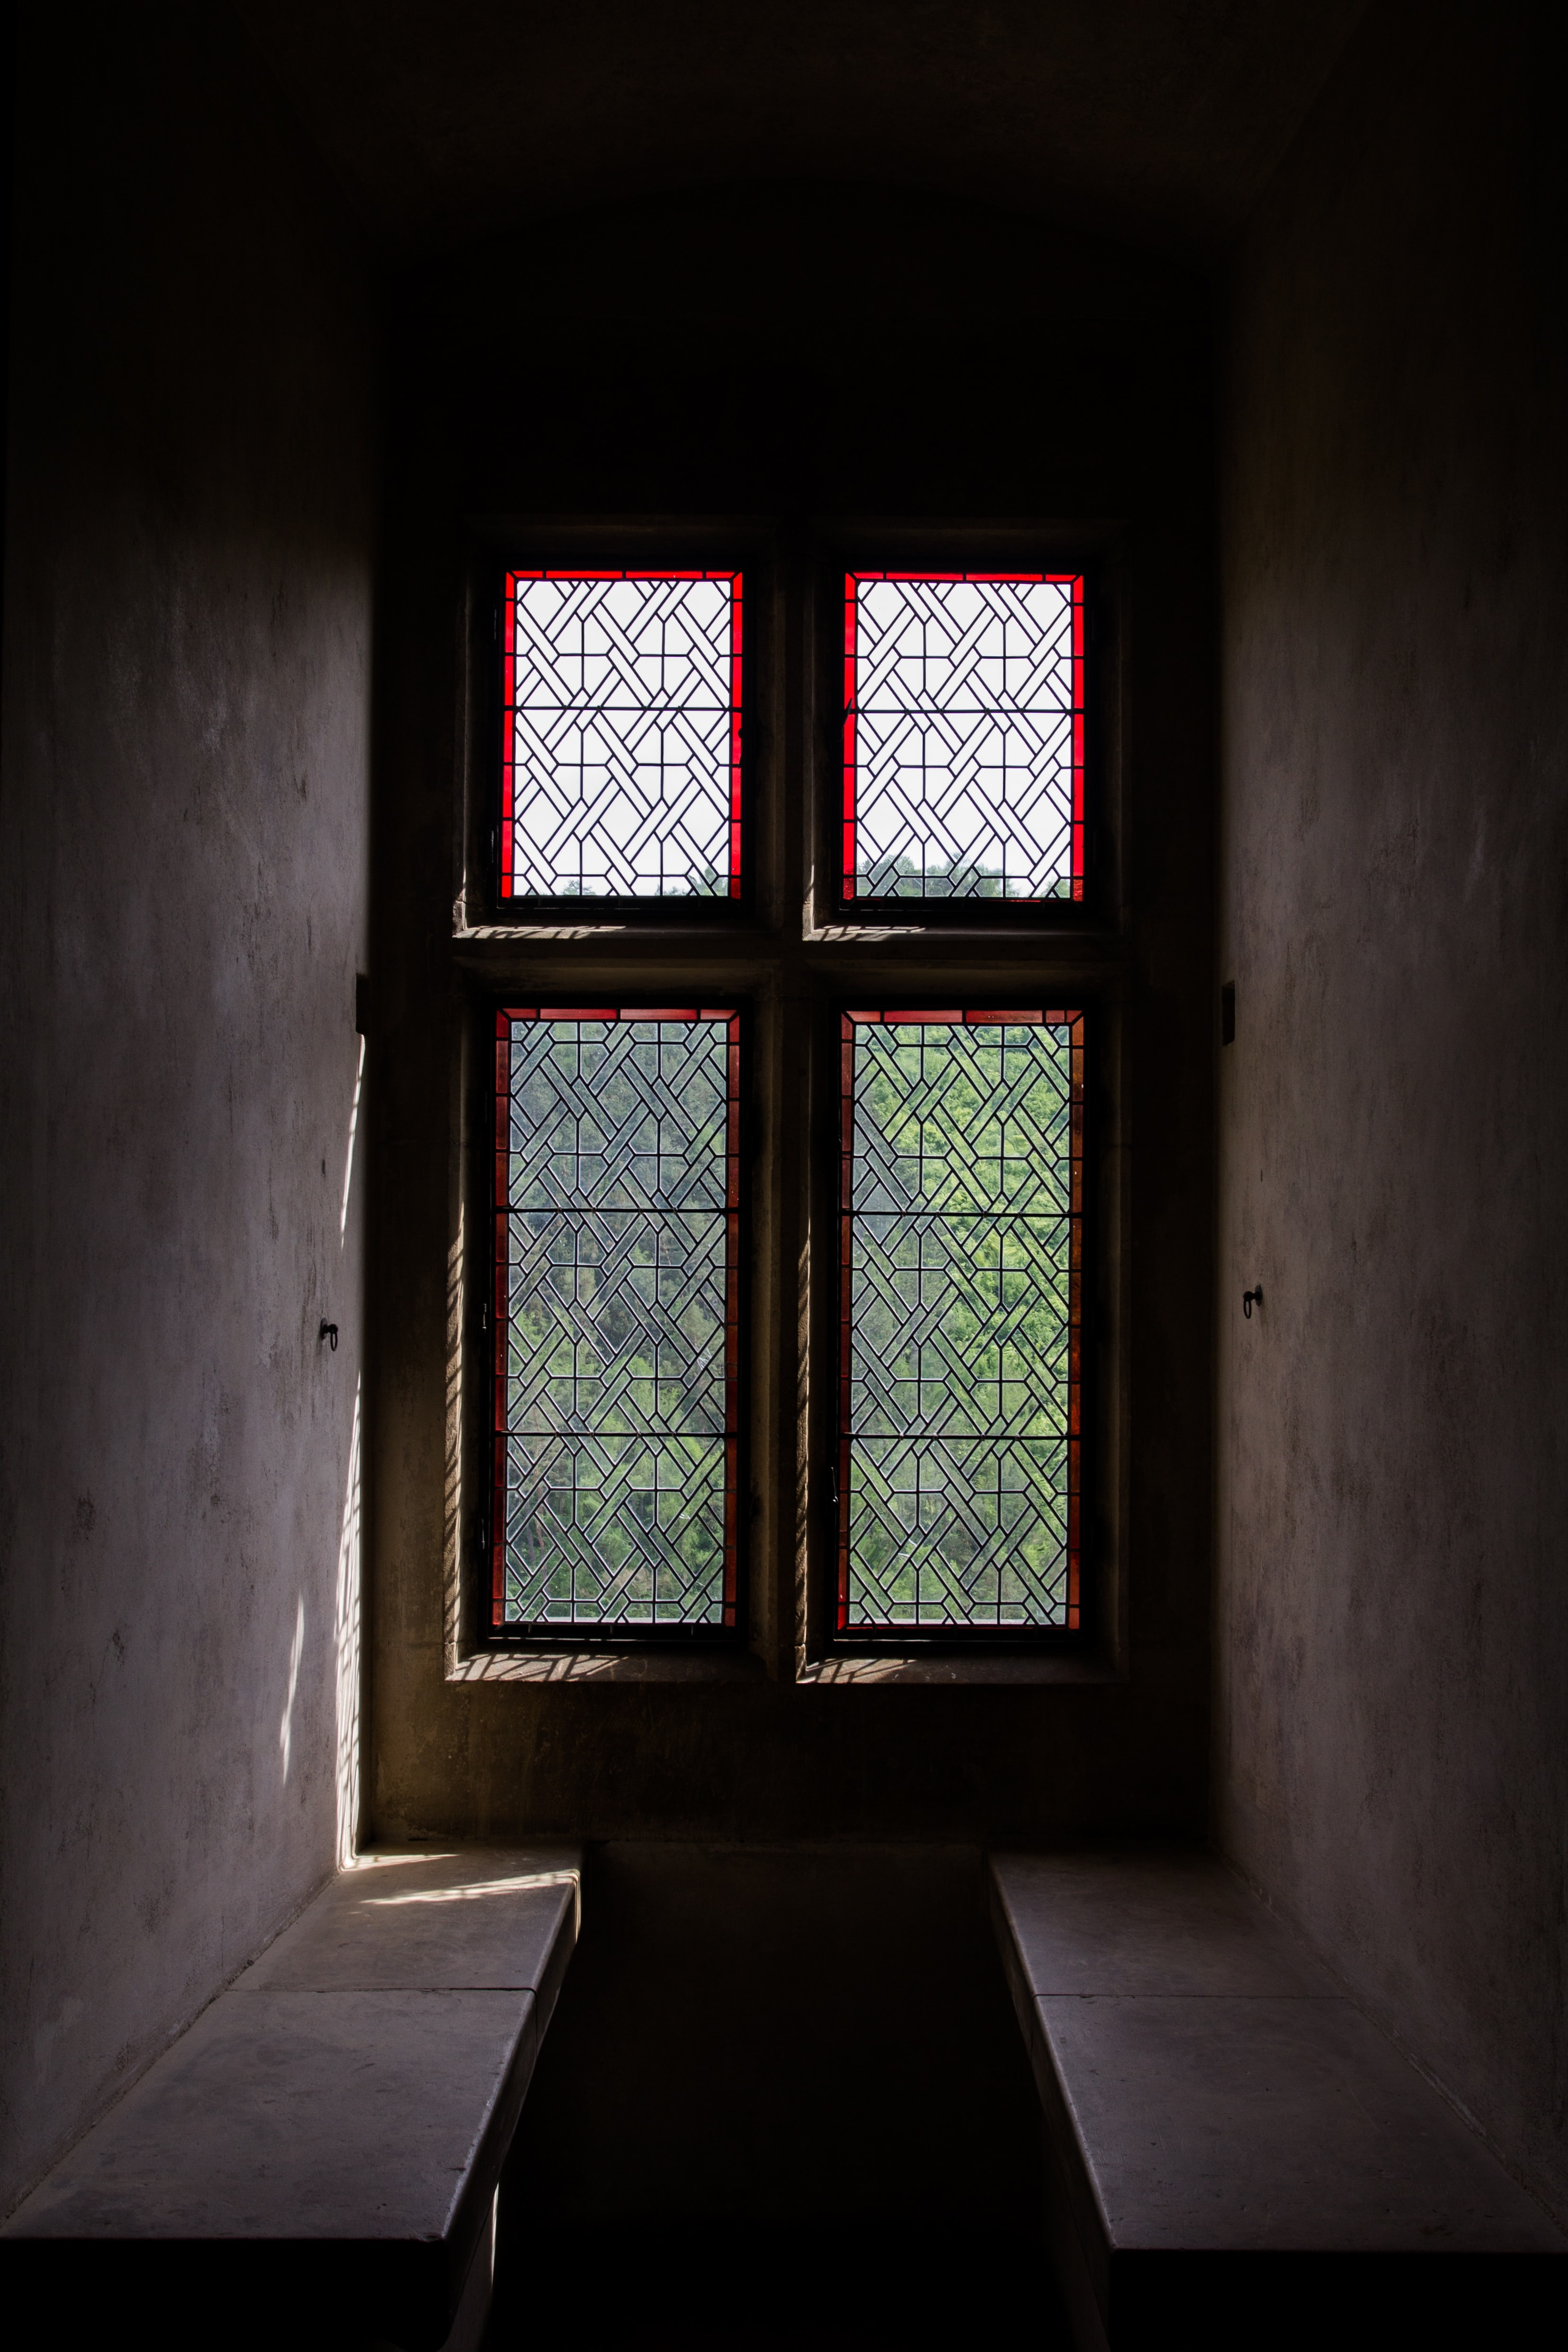 white and clear window pane